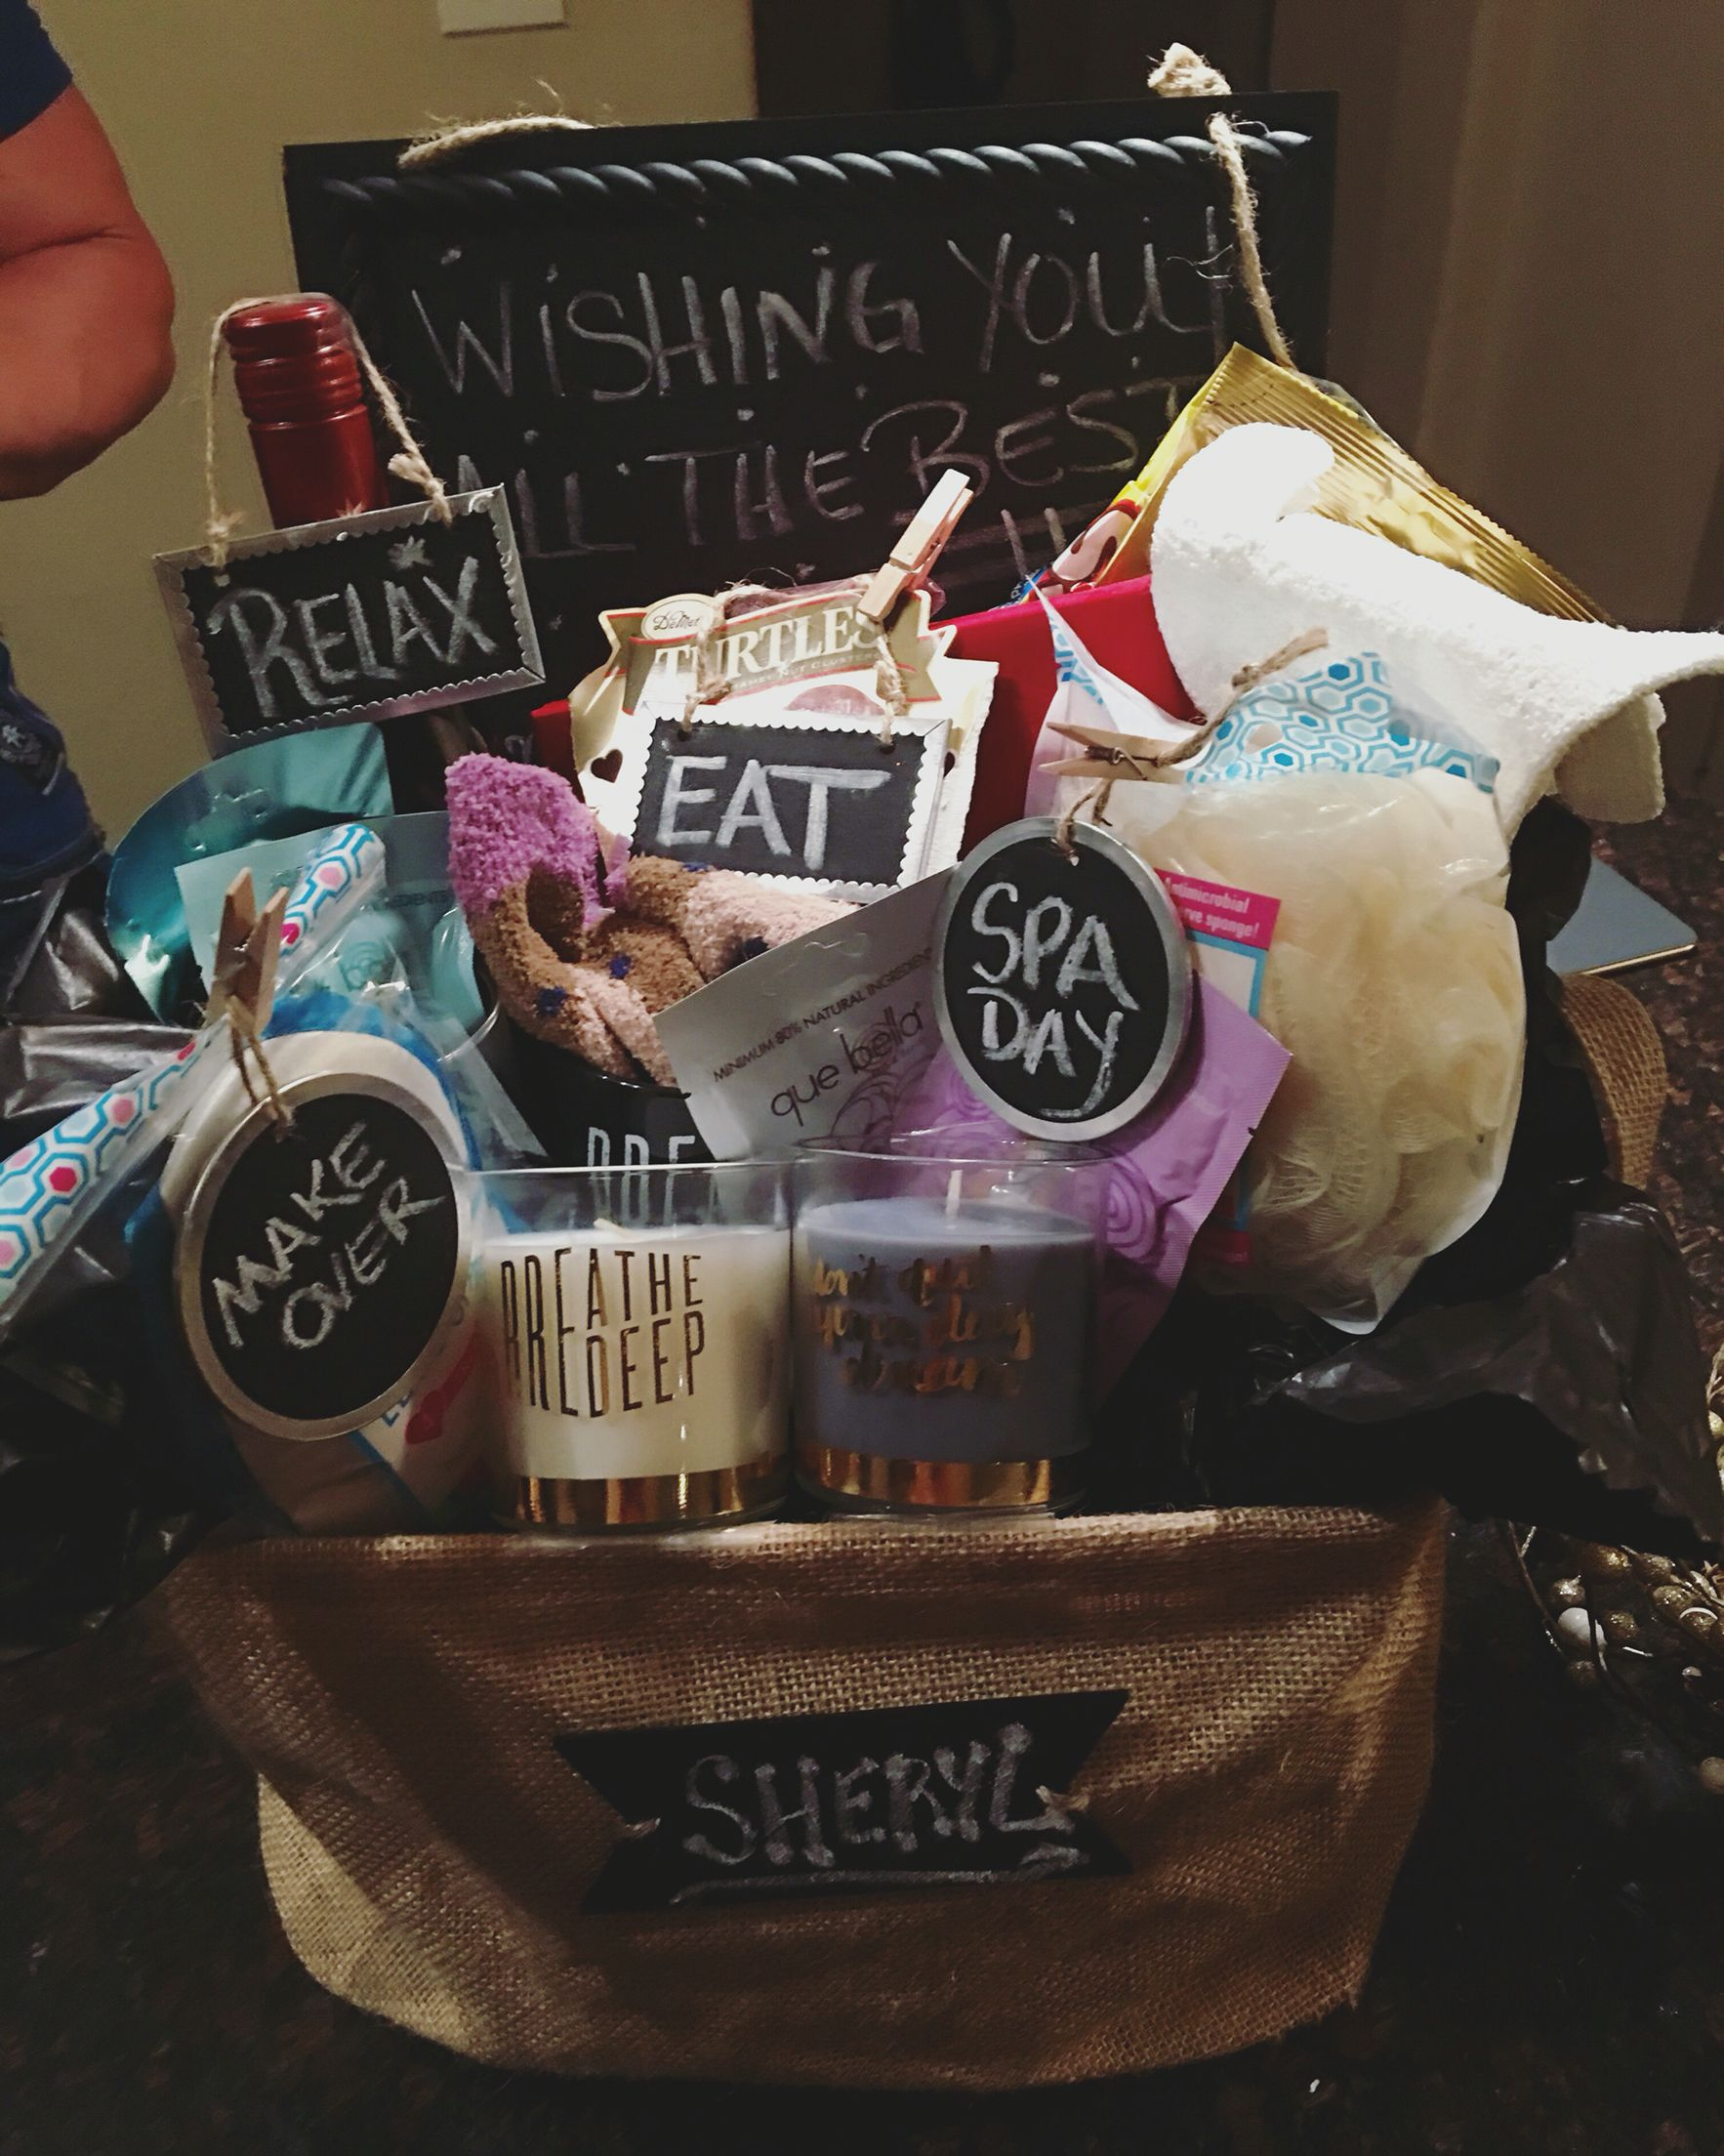 Farewell Gift Basket For My Coworker Emergency Kit For